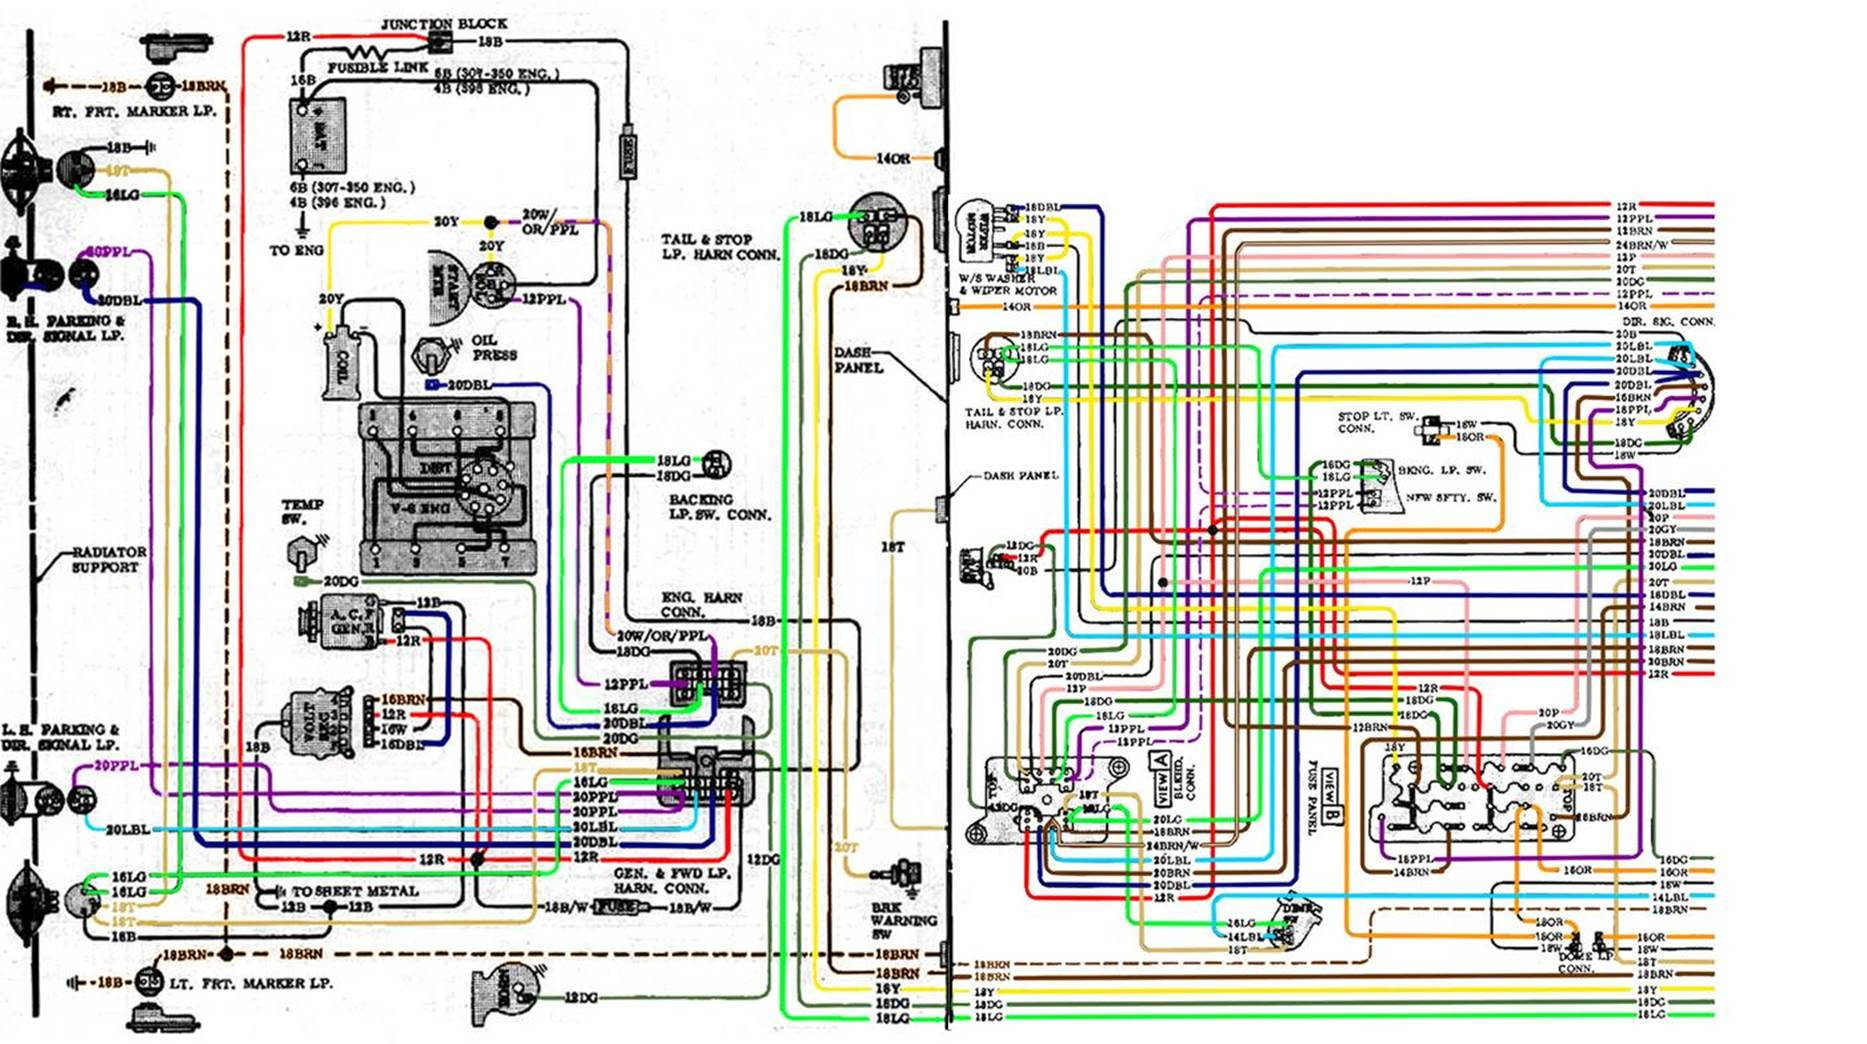 1972 chevelle wiring diagram 1972 wiring diagrams online 67 72 chevy wiring diagram description chevelle wiring diagram